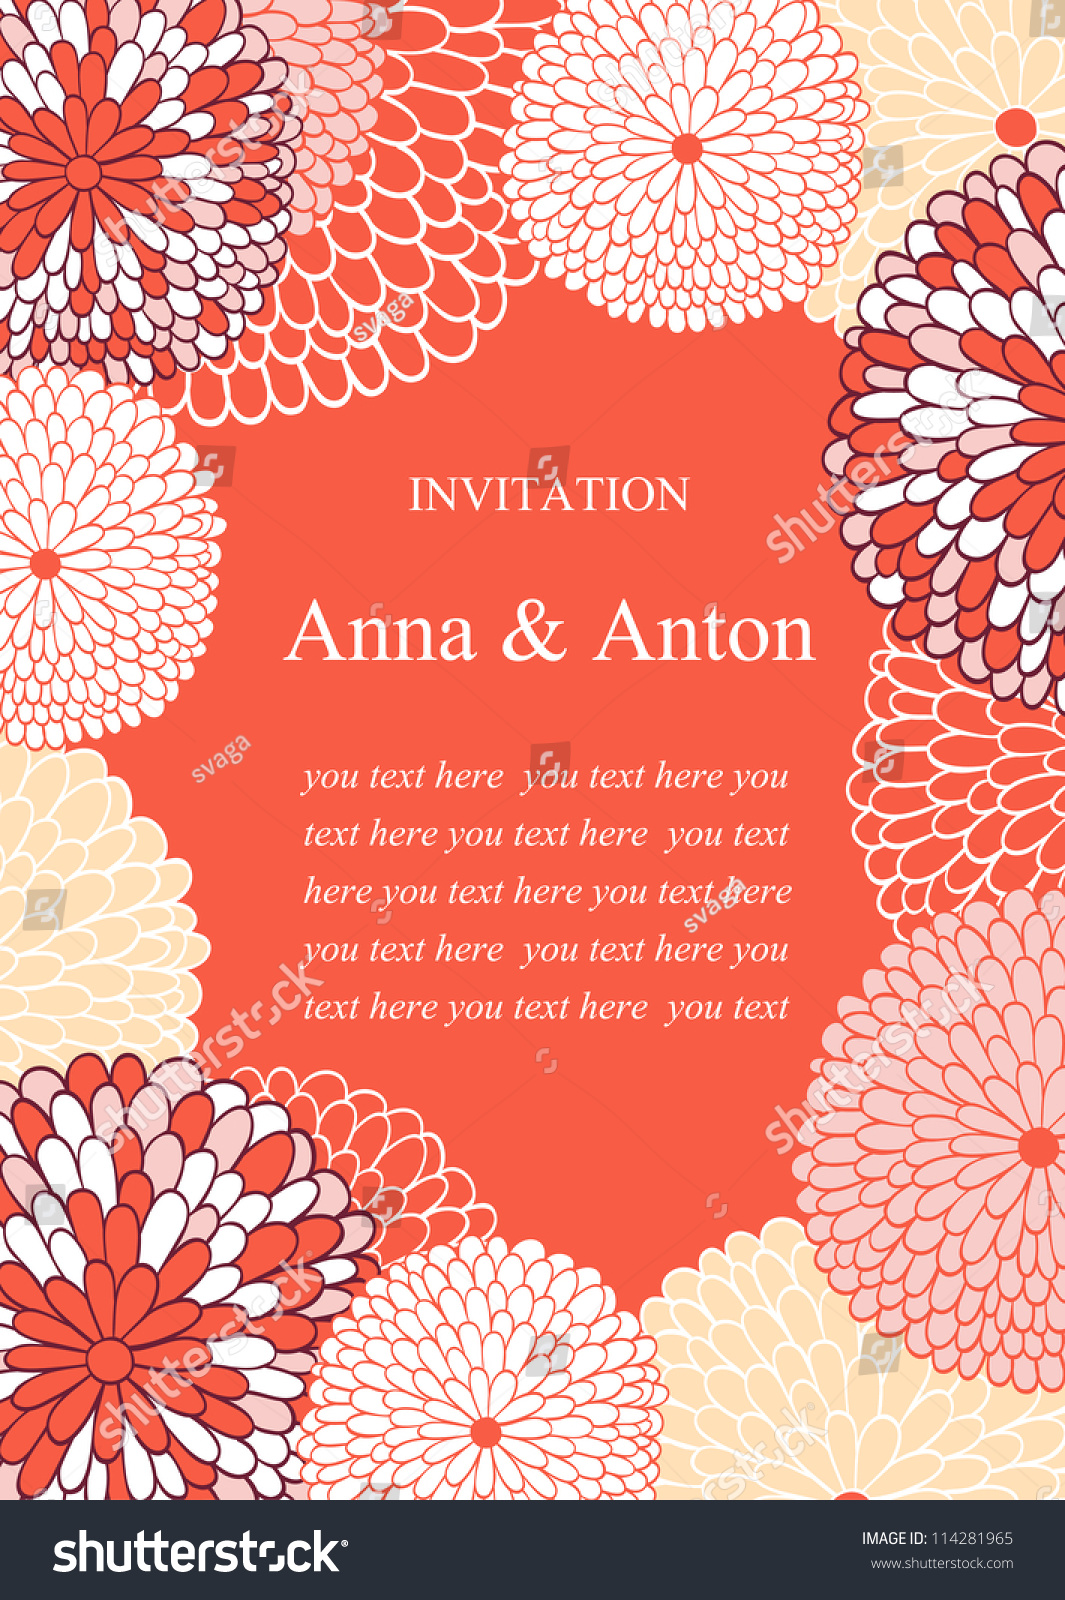 Wedding Invitation Floral Romantic Vector Background Pink Stock ...